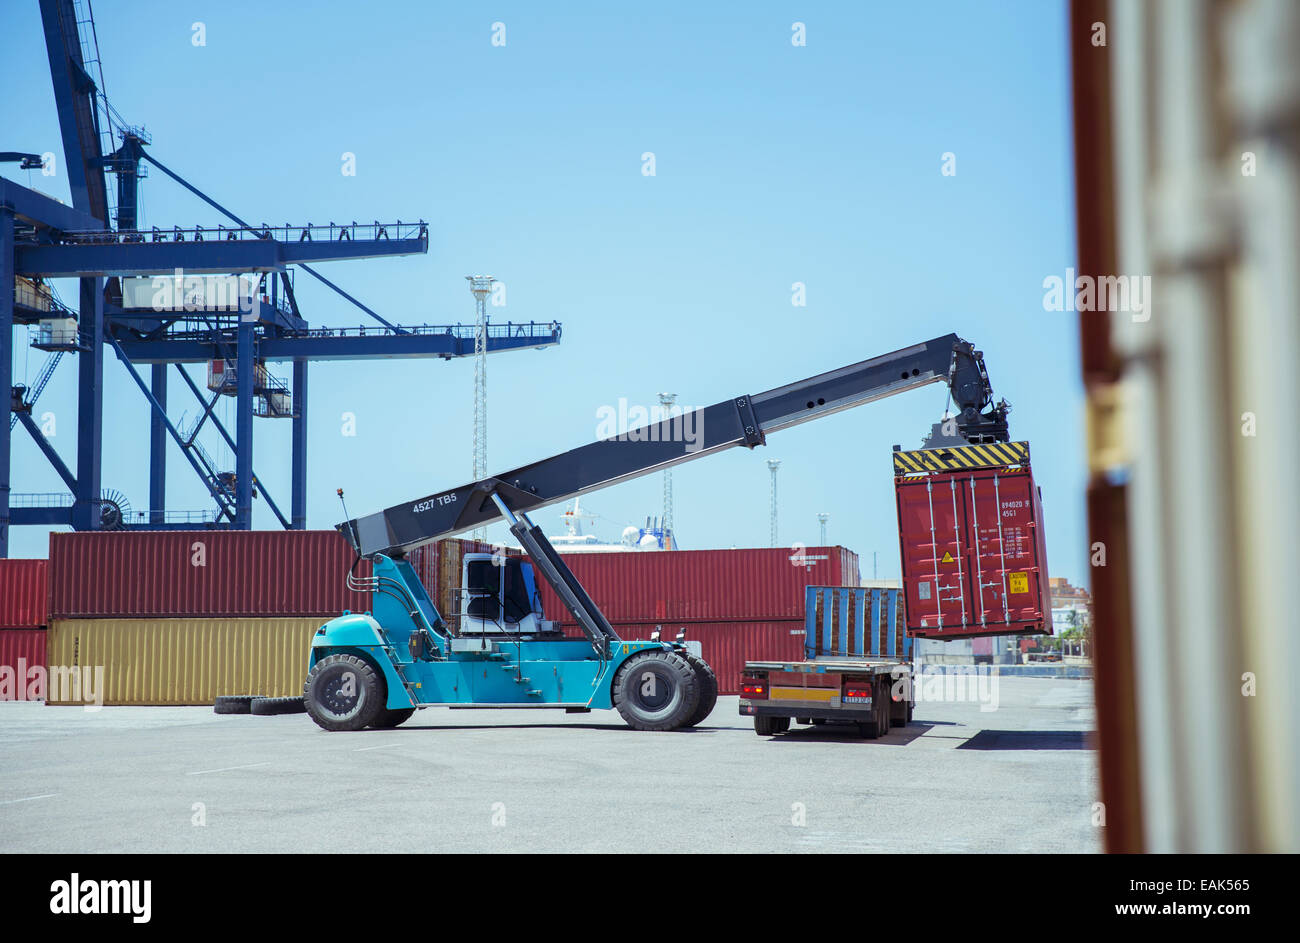 Crane lifting cargo container onto truck - Stock Image